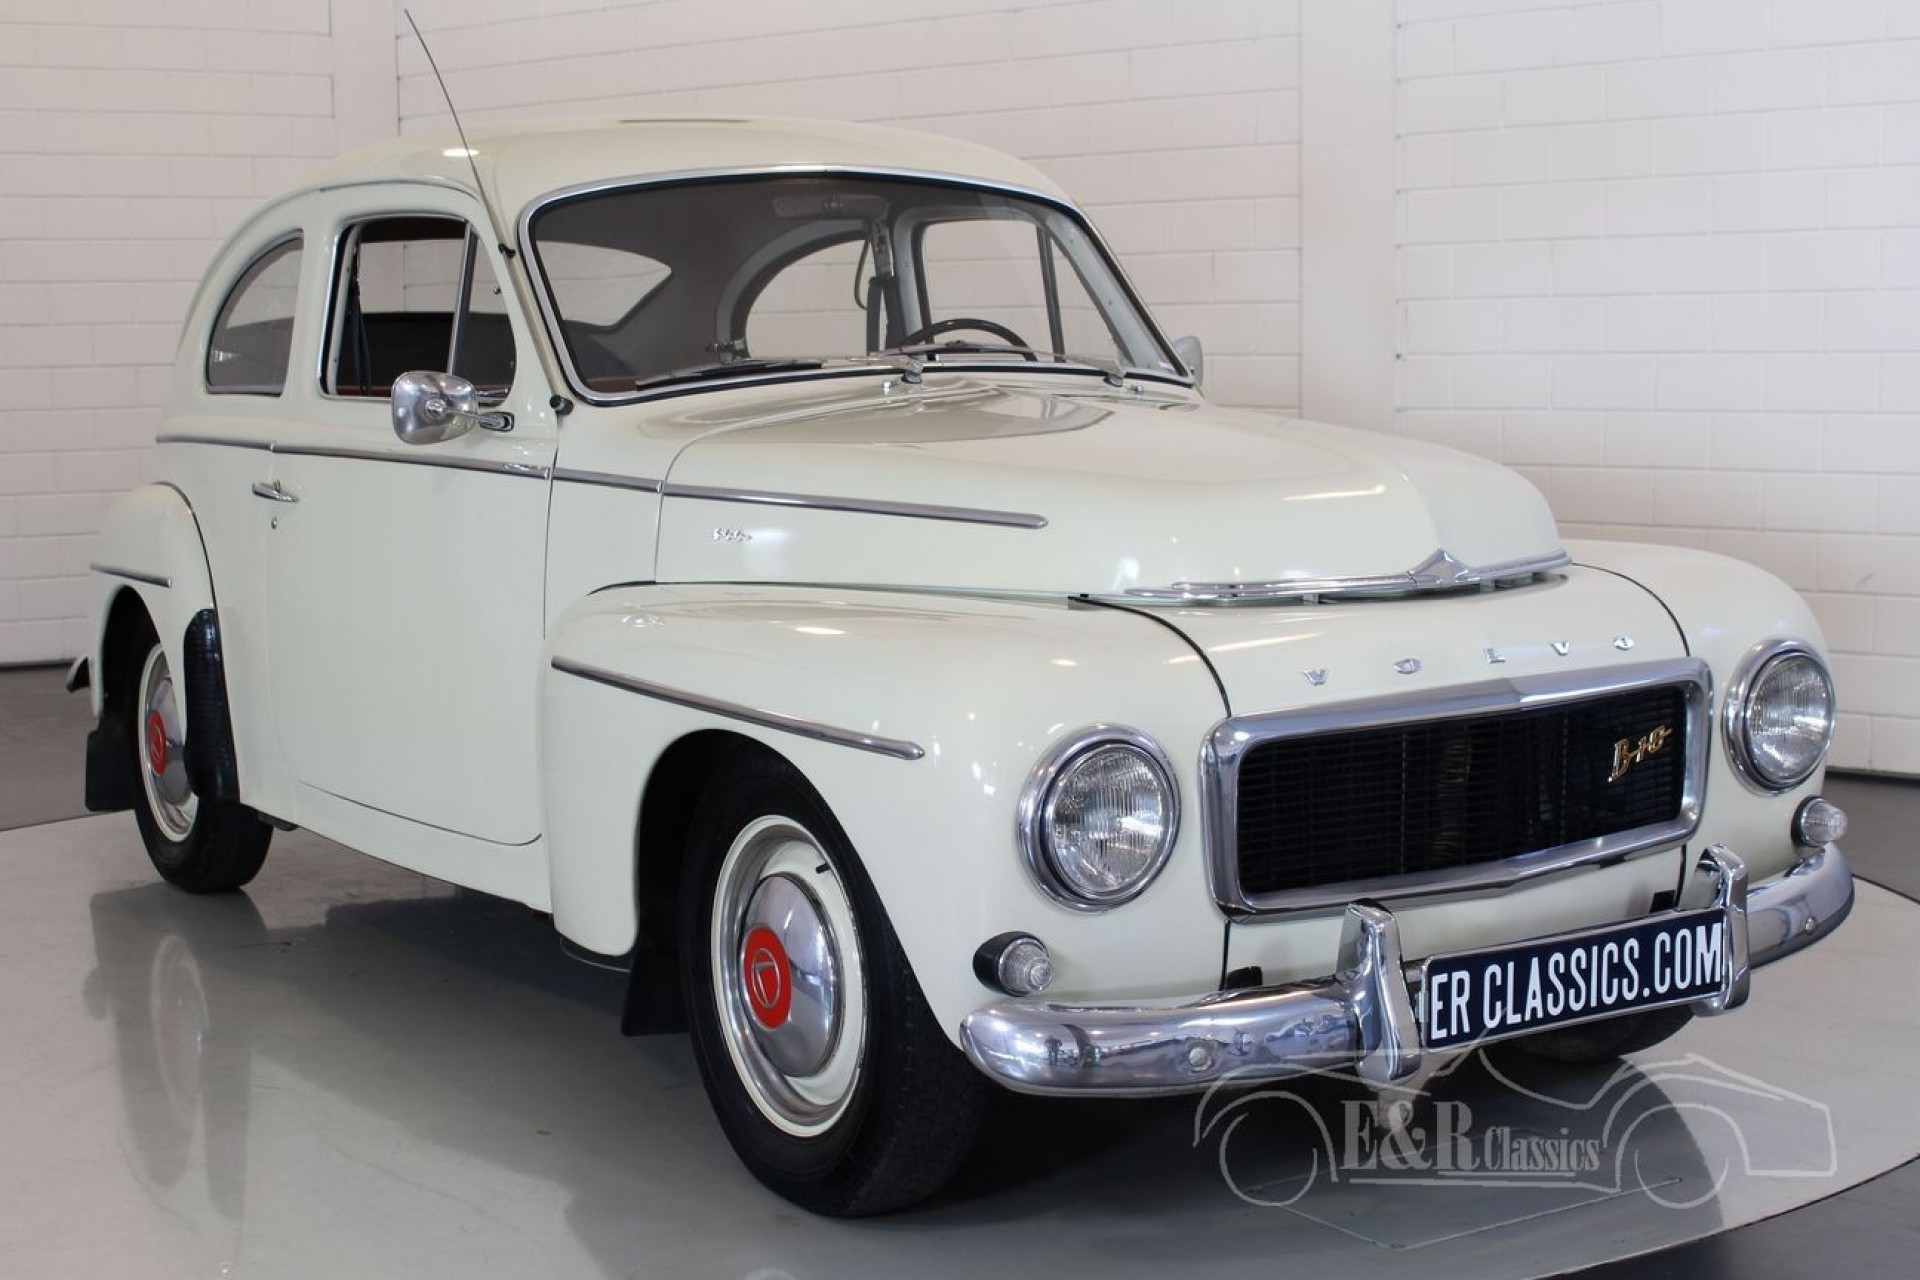 Volvo Pv 544 Sport 1964 For Sale At Erclassics